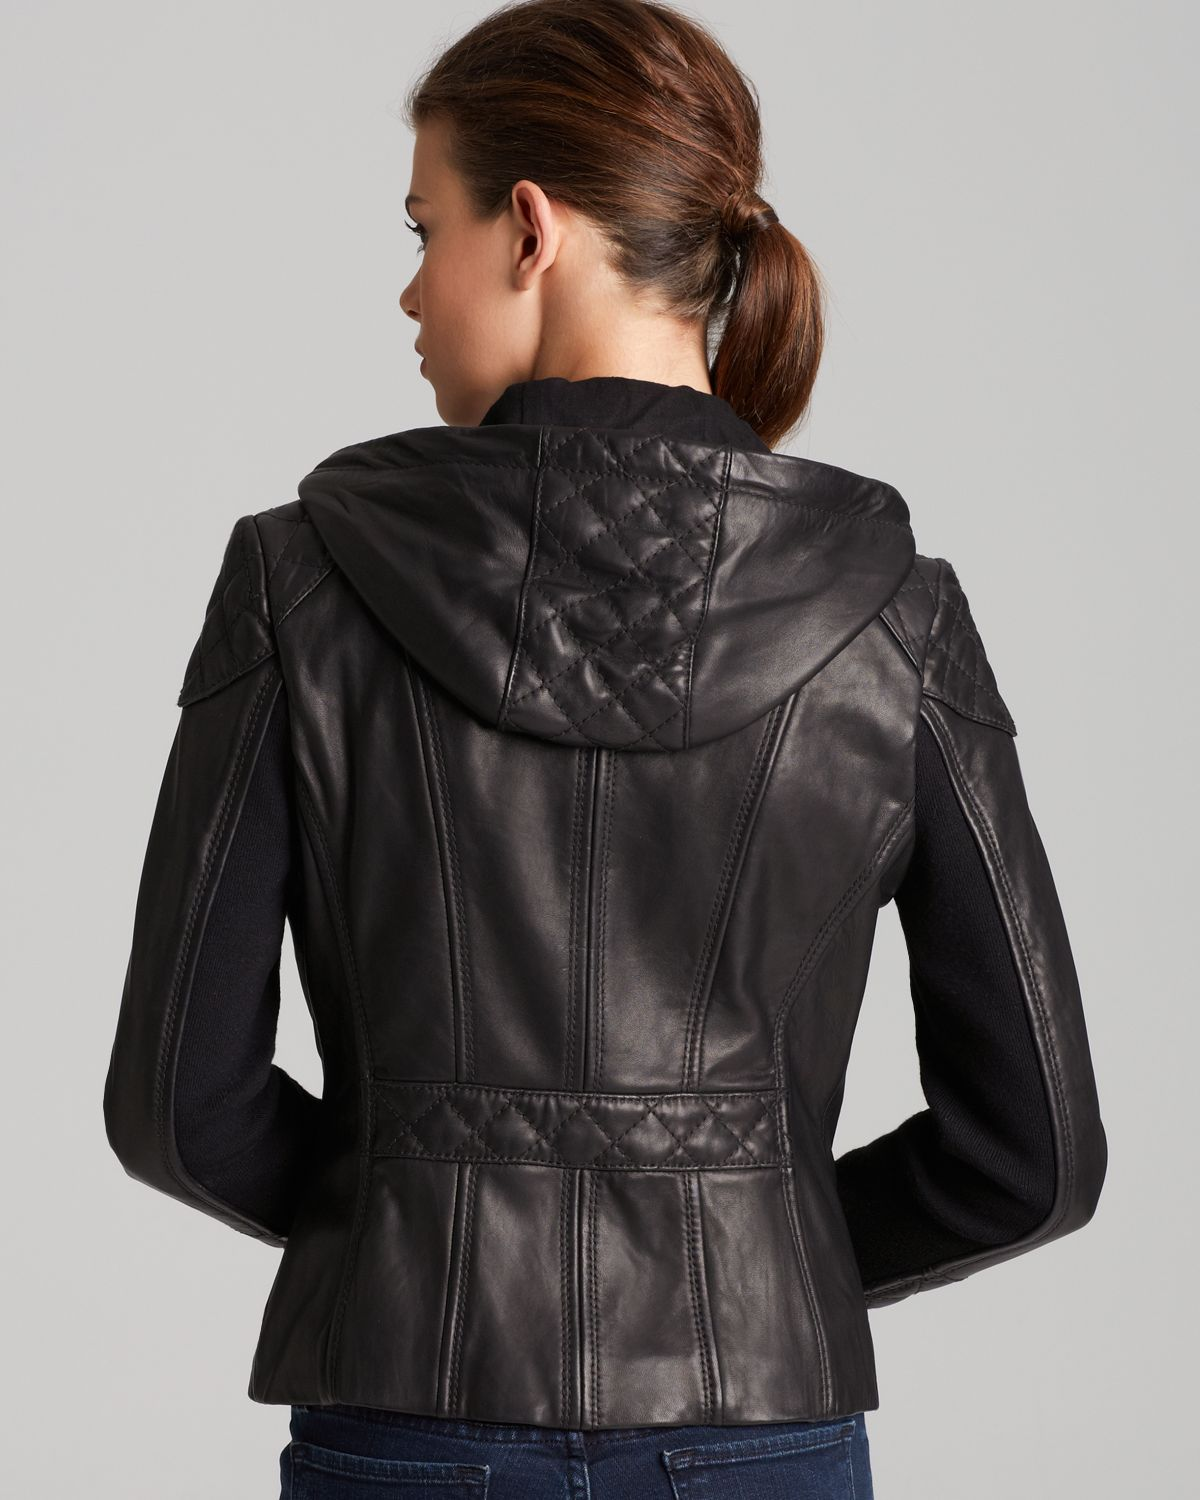 Michael kors leather jackets for women